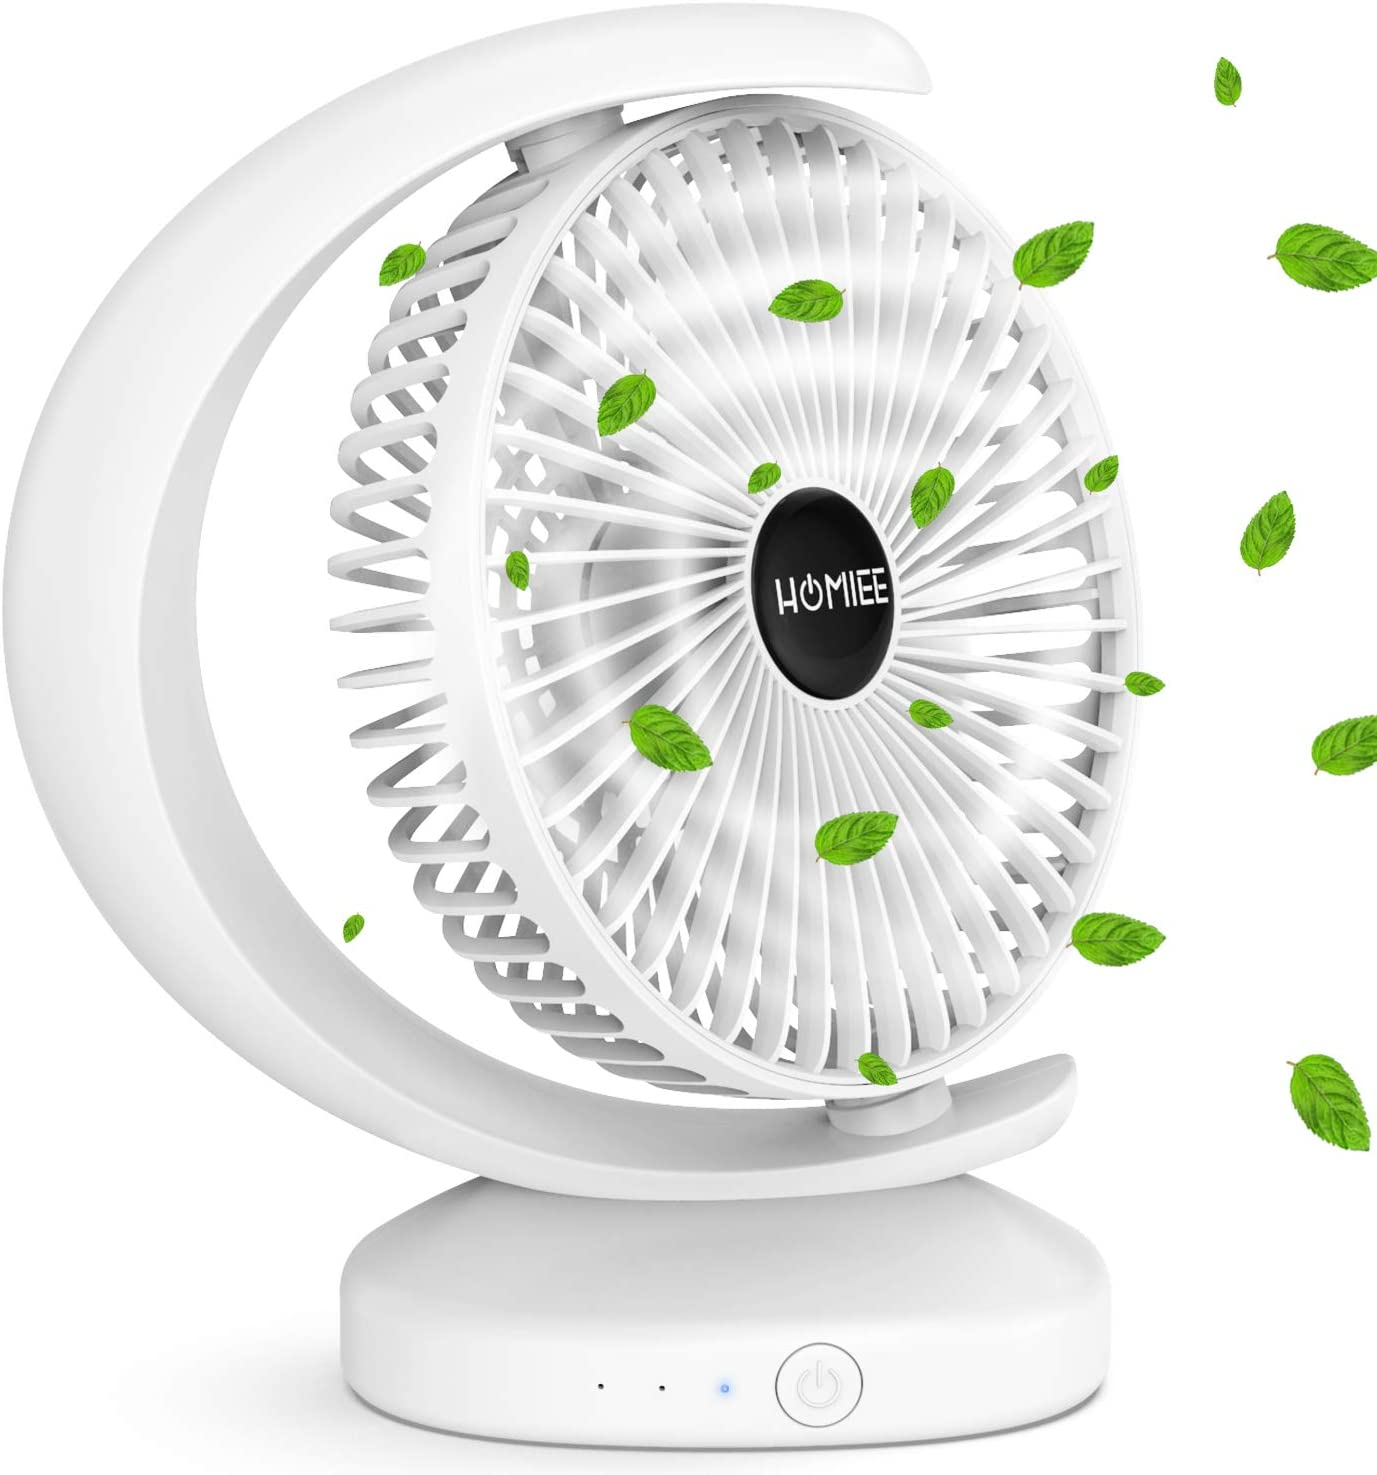 Kiislee Mini USB Desk Fan Portable Desktop Table Cooling Fan with Strong Wind Quiet Operation for Home Office Car Outdoor Travel 2000mAh Personal Small Wireless Fan Rechargeable 3 Speeds